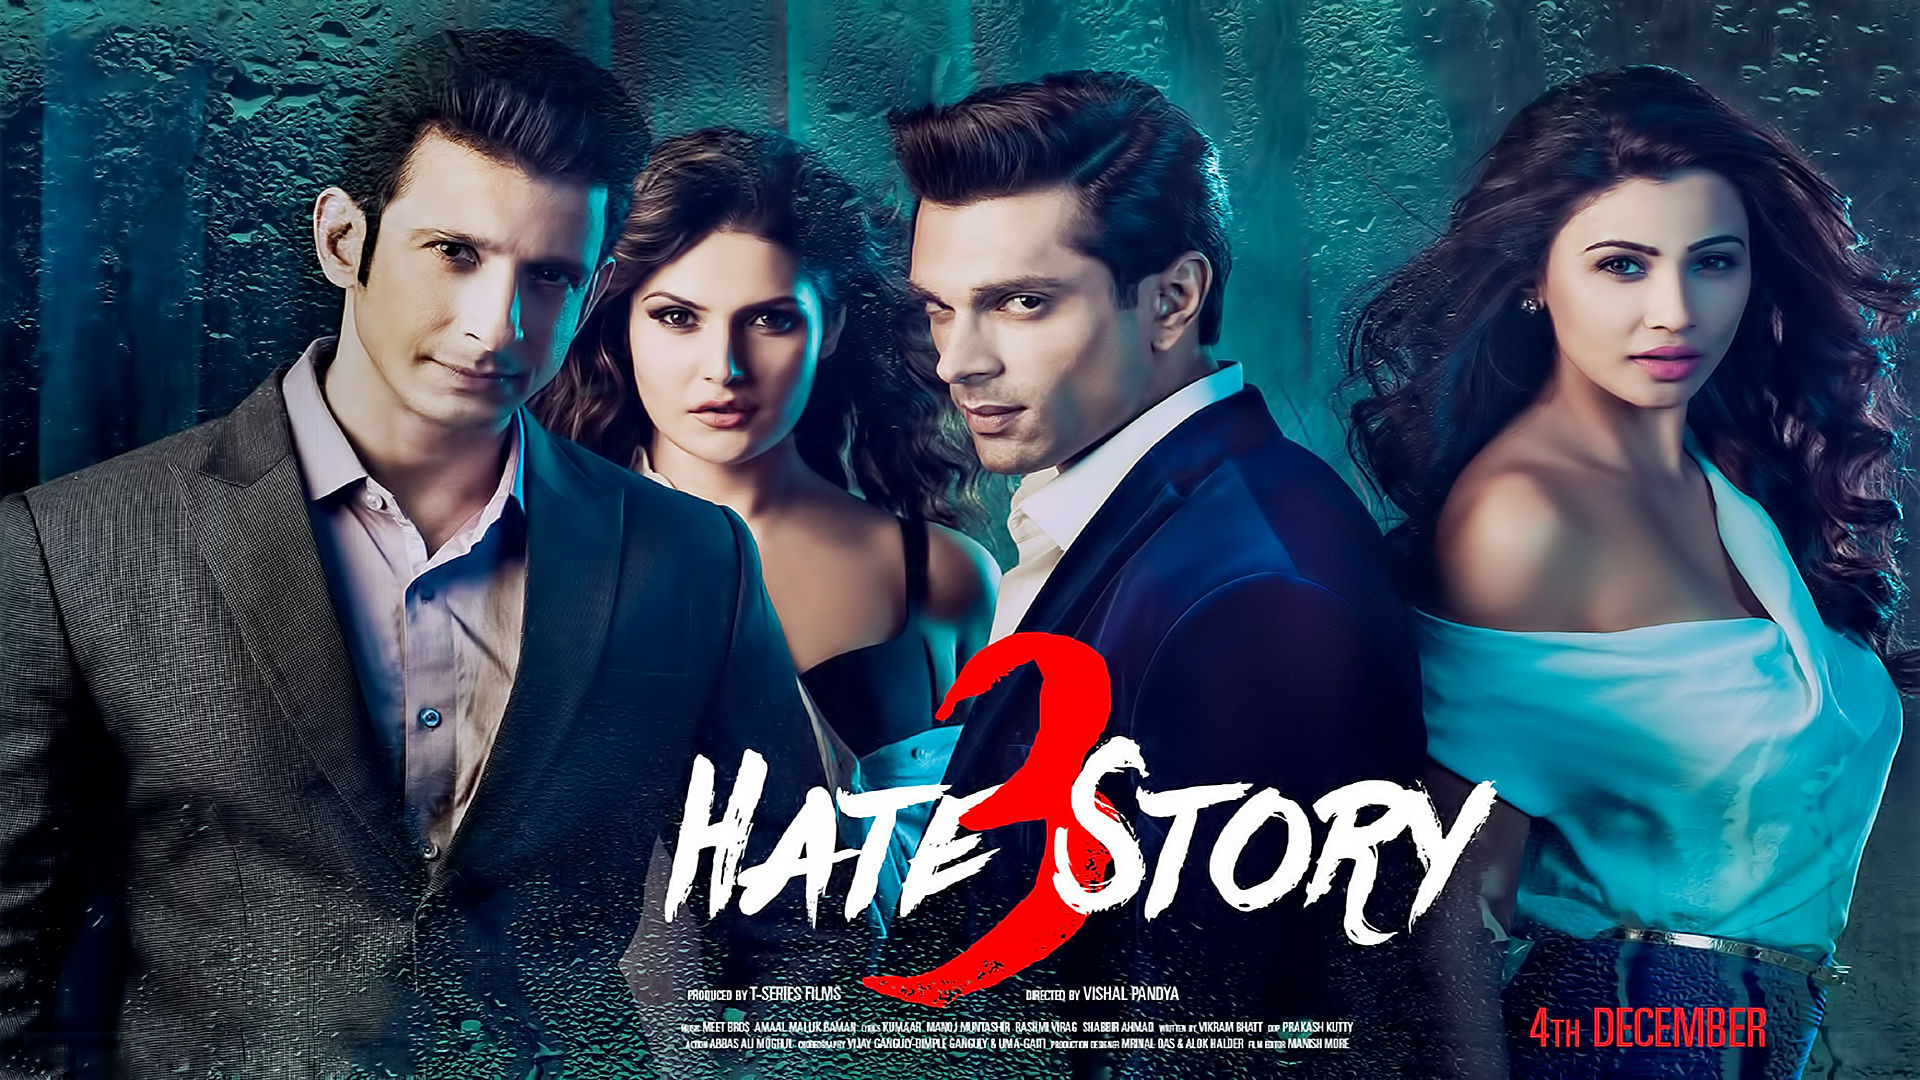 Hate Story 3 Movie Poster Sharman Joshi, Zarine Khan, Karan Singh Grover, Daisy Shah